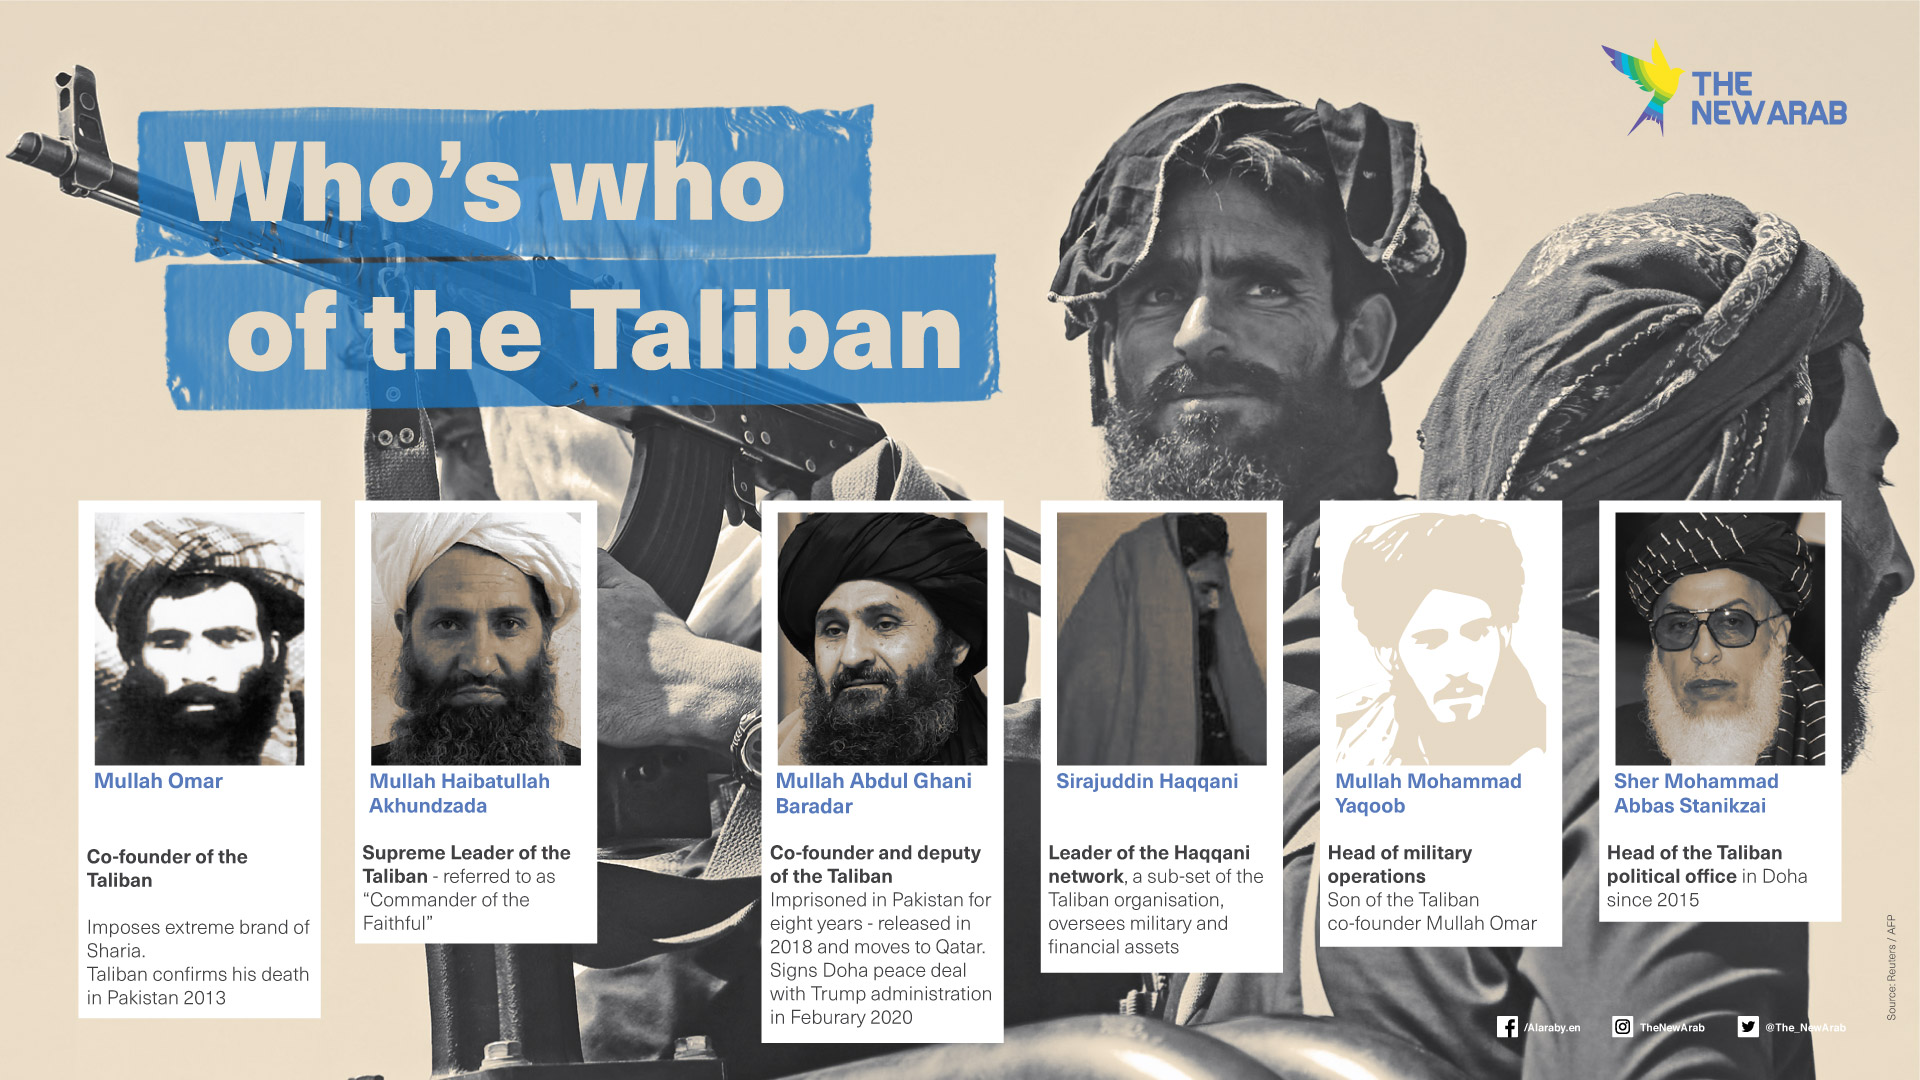 Who's who of the Taliban?